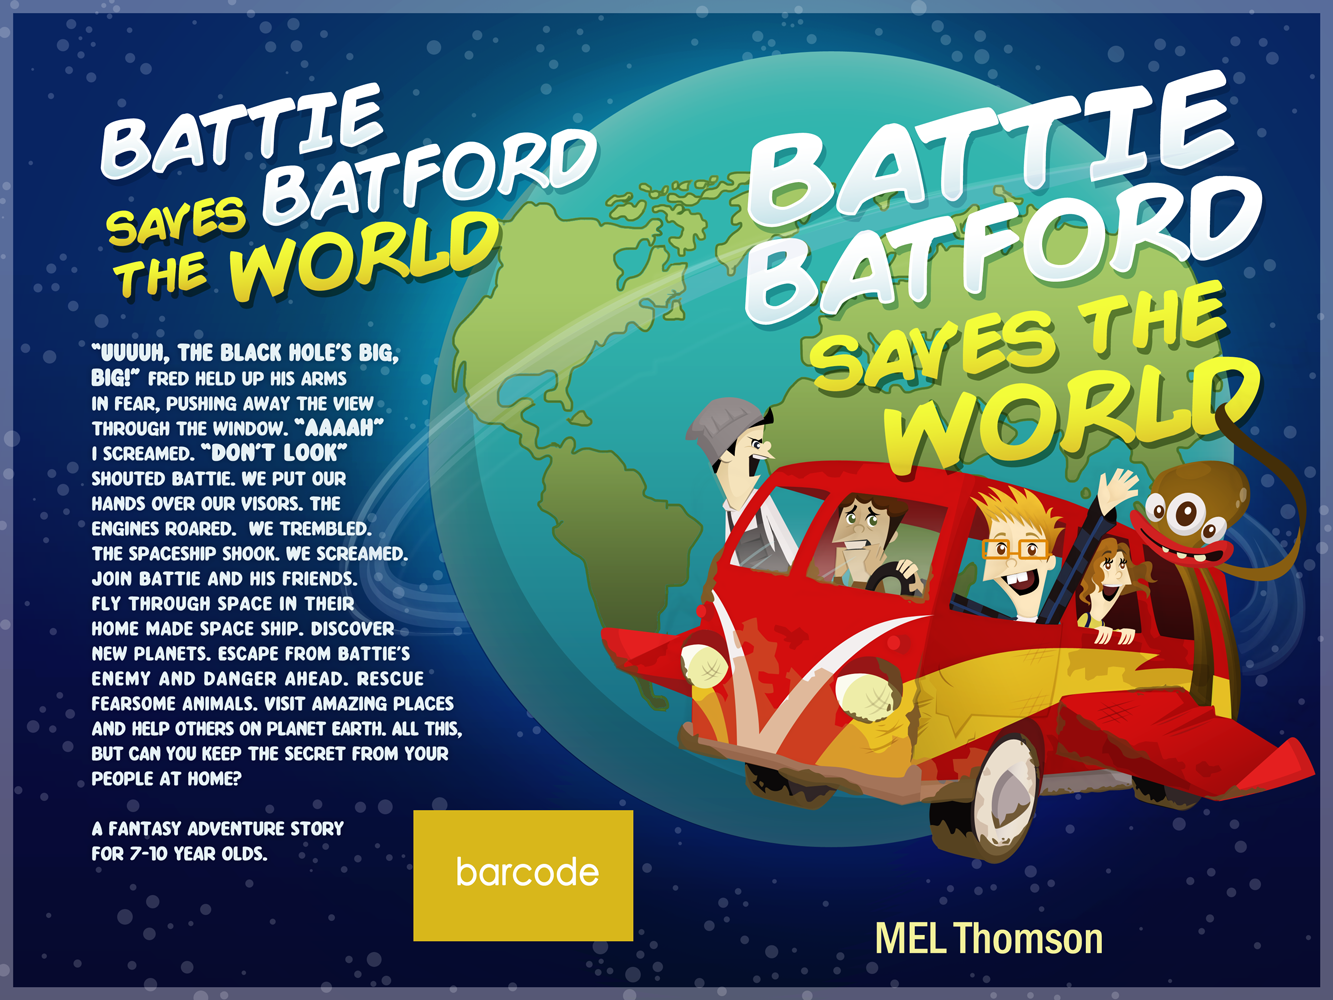 Create an exciting children's book cover for Battie Batford's travels in space and around the world.